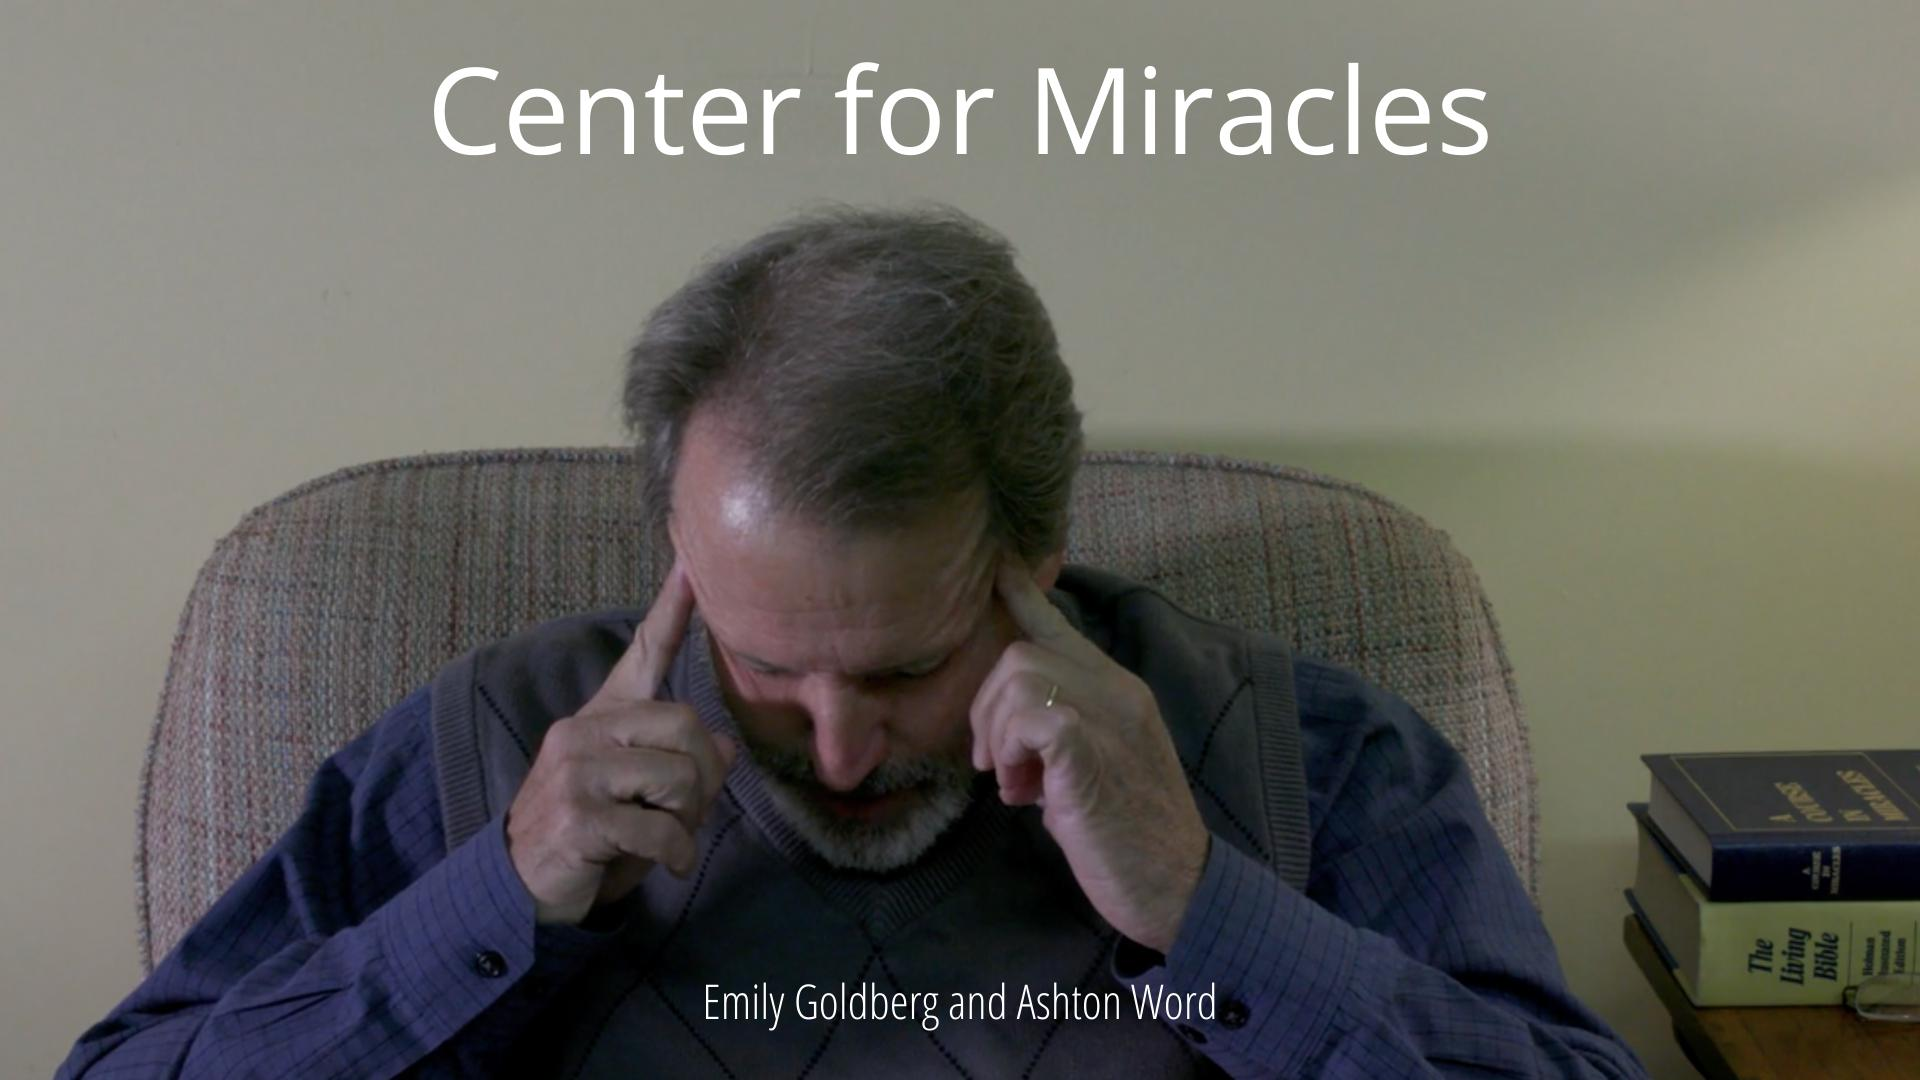 Center for Miracles